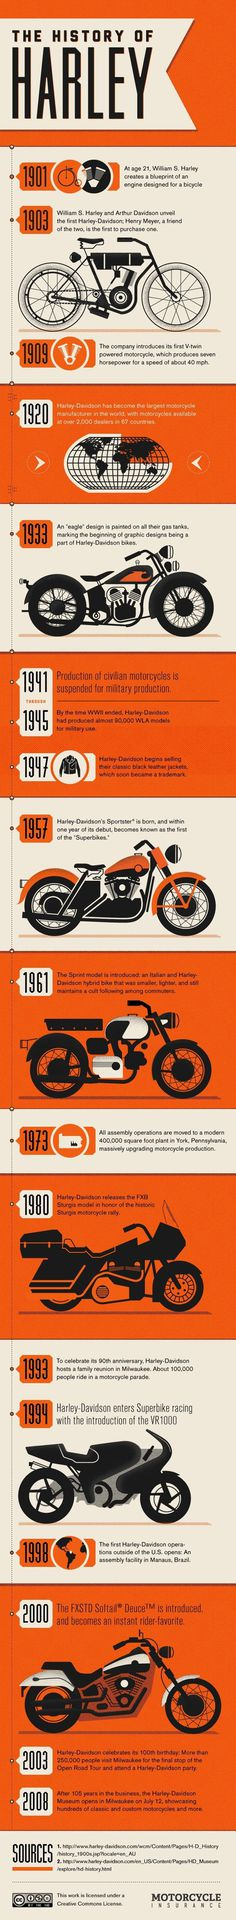 History of Harley